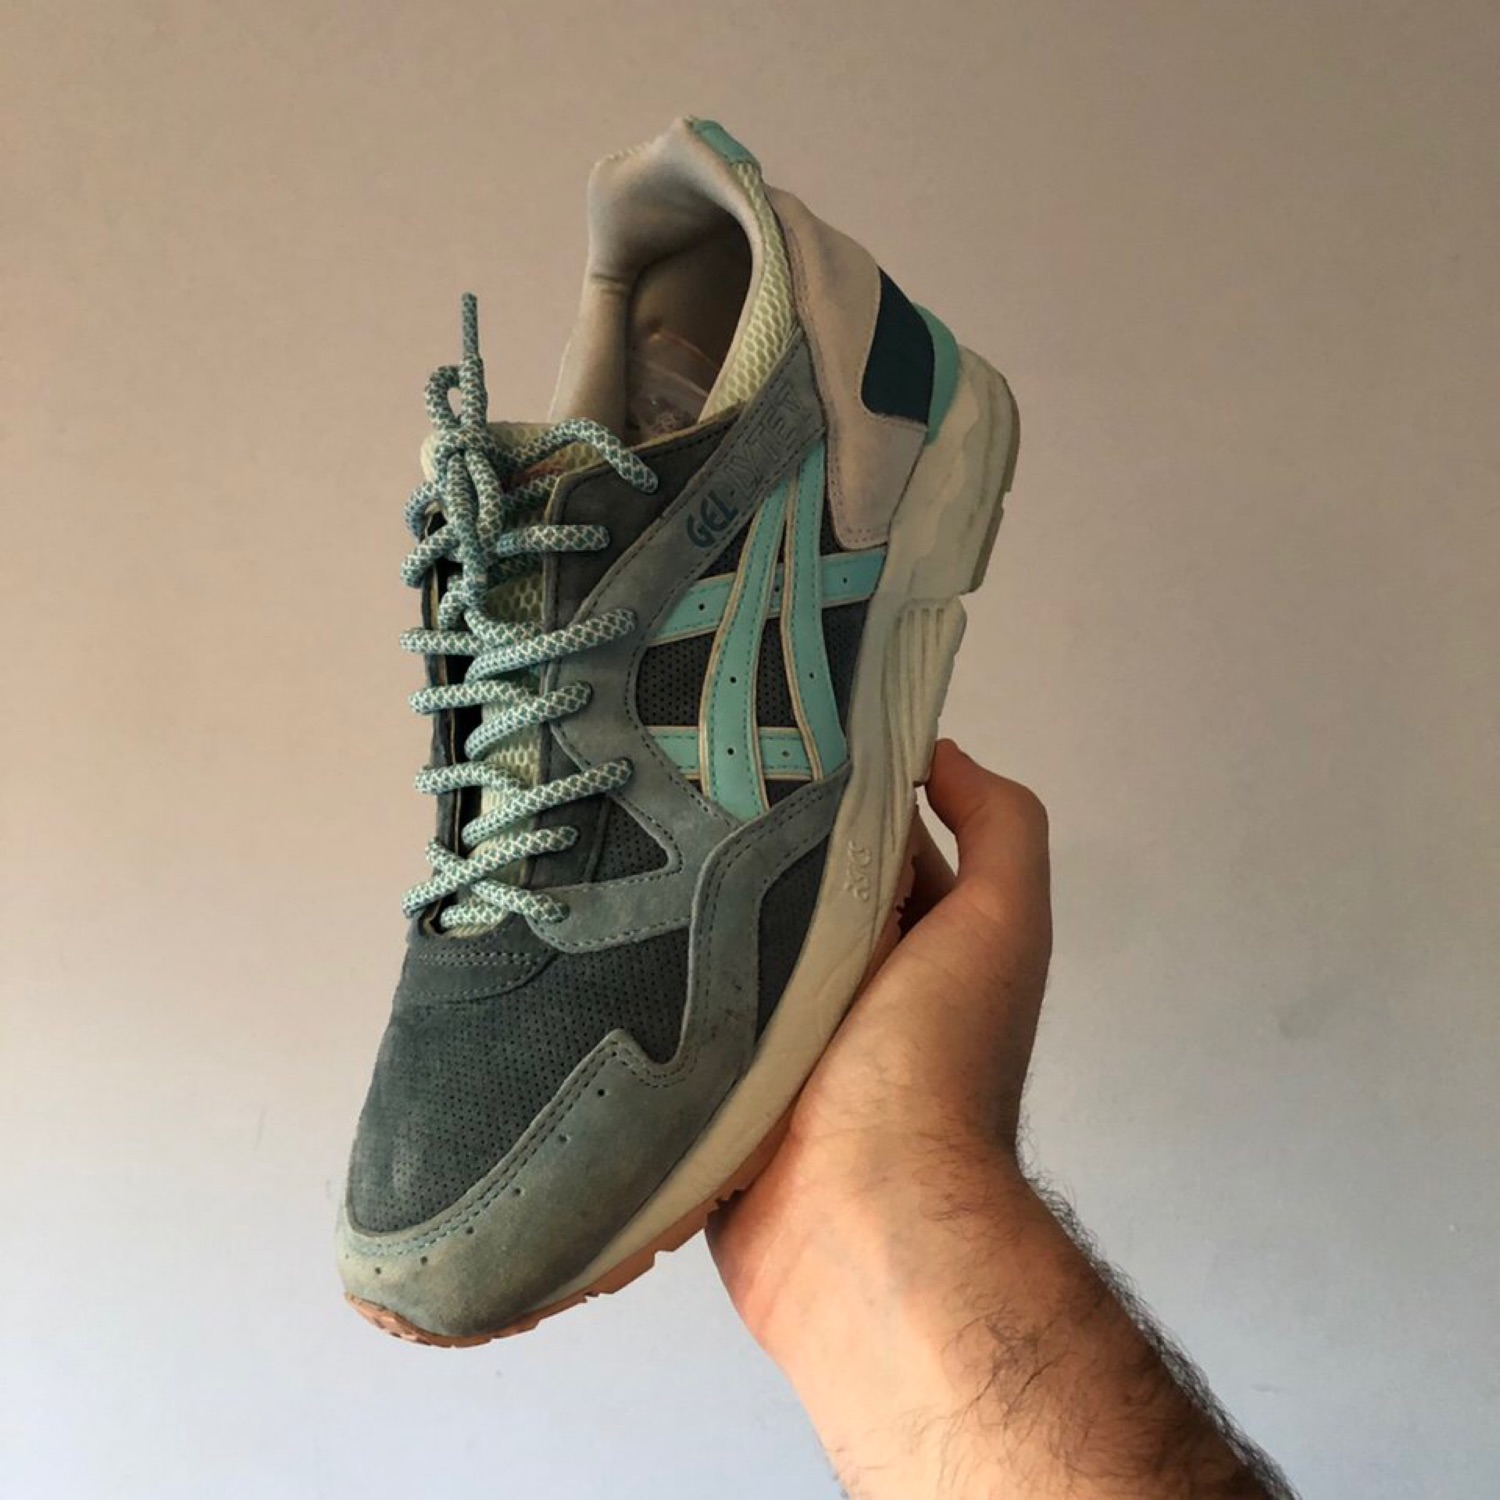 separation shoes 20f0d 26b10 Ronnie Fieg X Asics Gel-Lyte V Sage